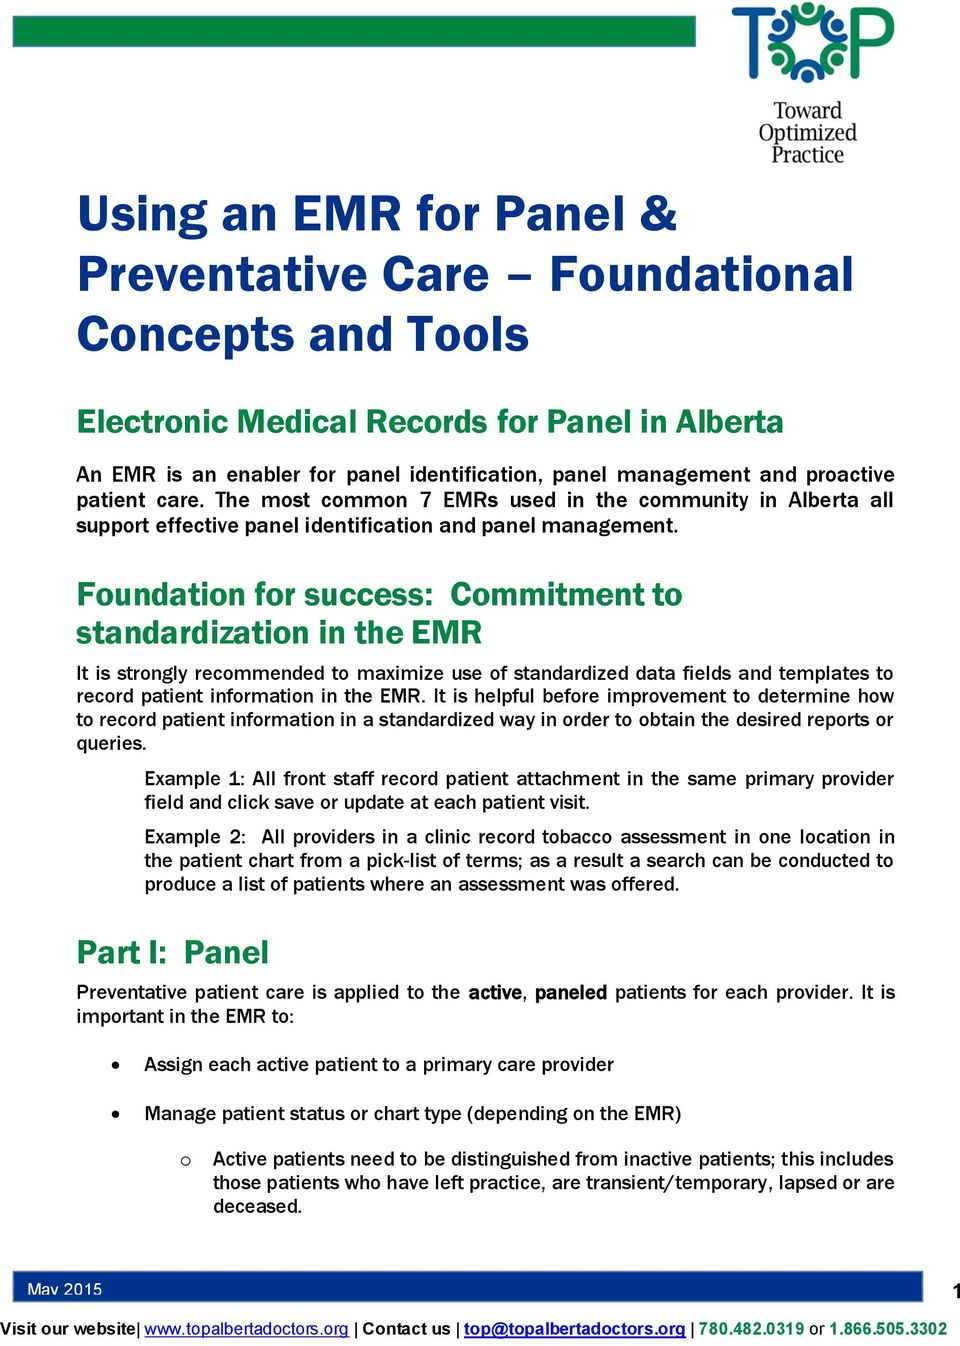 Foundation for success: Commitment to standardization in the EMR It is strongly recommended to maximize use of standardized data fields and templates to record patient information in the EMR.